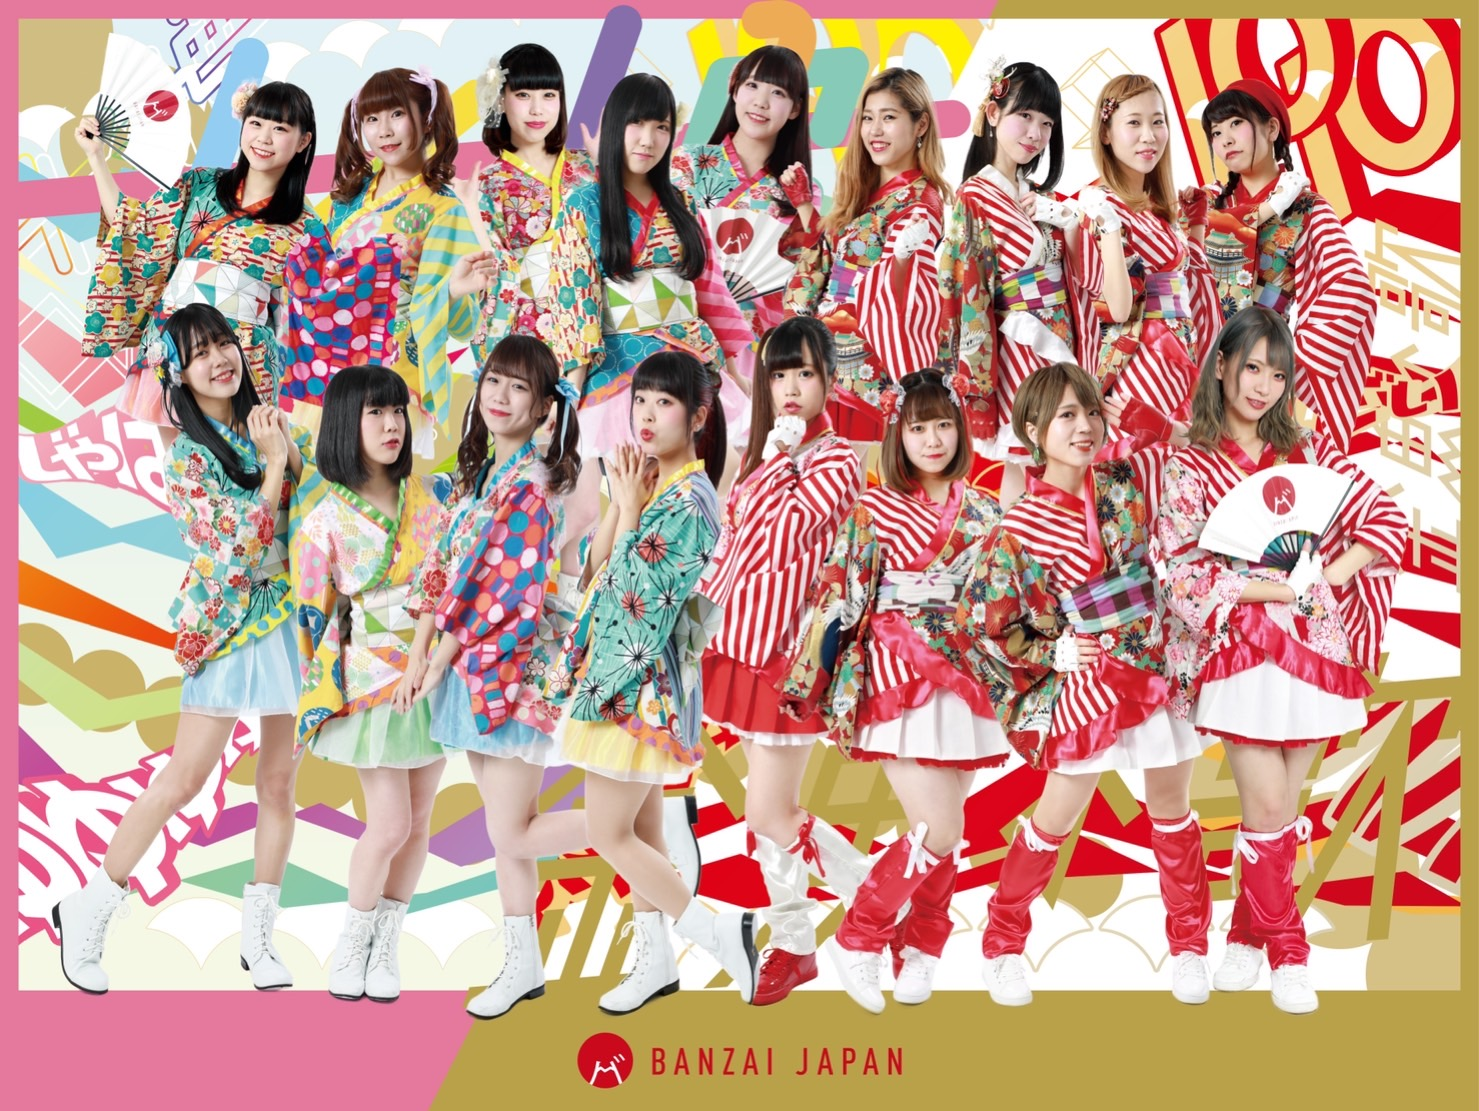 BANZAI JAPAN's 2nd Single「Jumpin' up!JAPAN!」has been released!